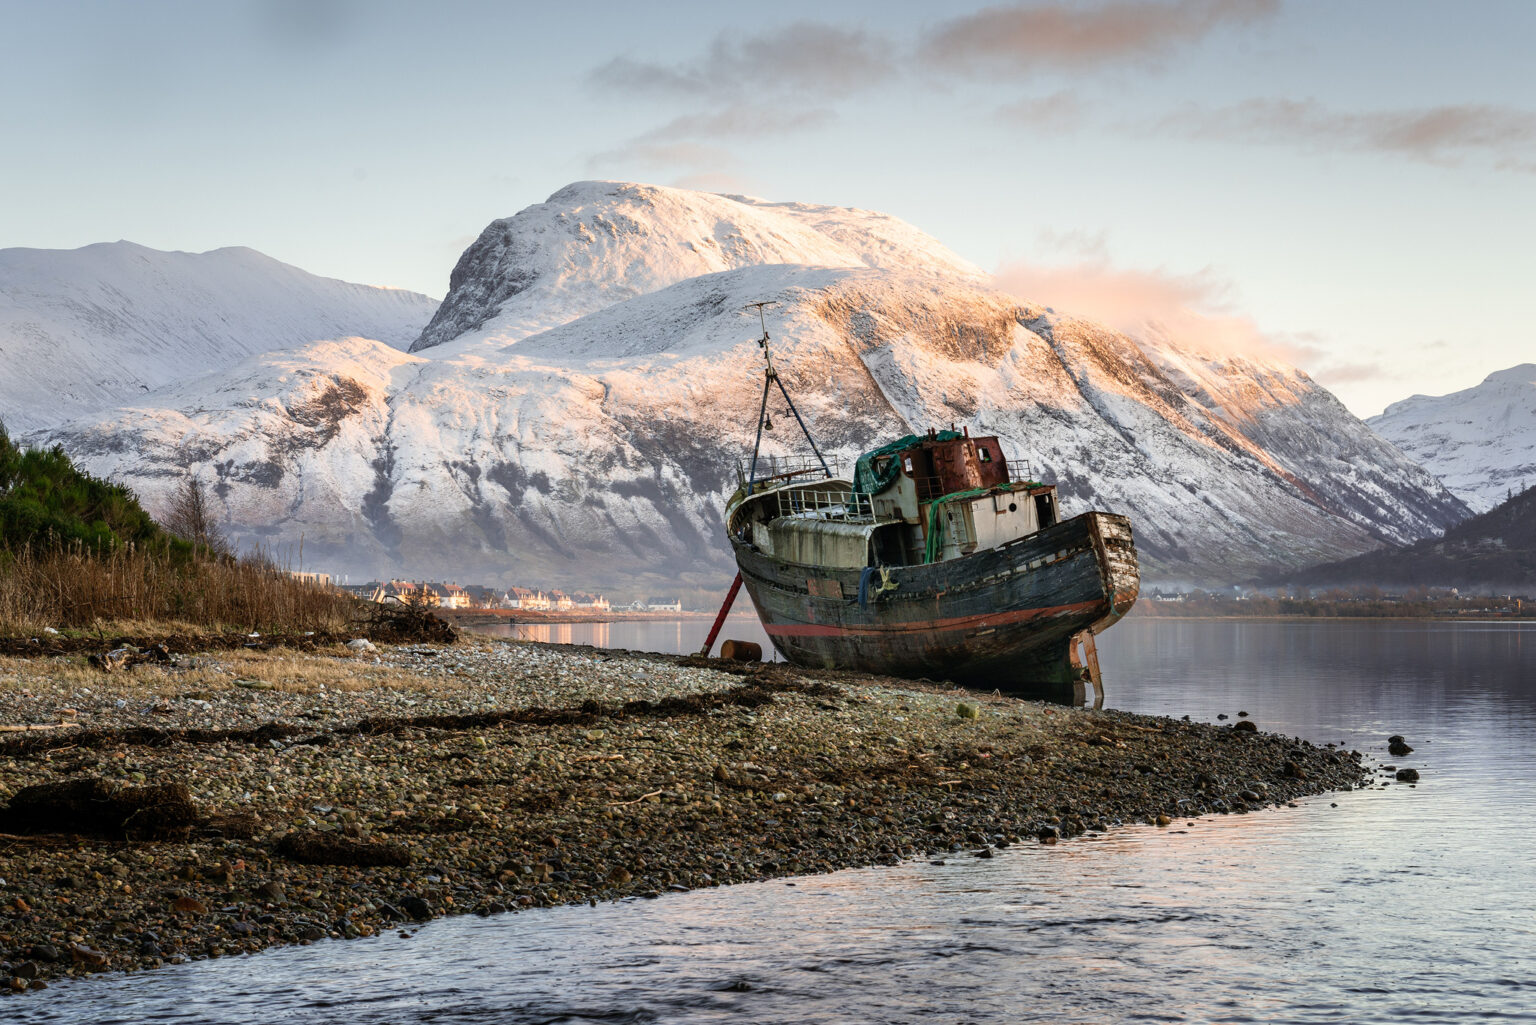 Corpach Boat Sunset with Ben Nevis at Sunset - Scotland Landscape Photography